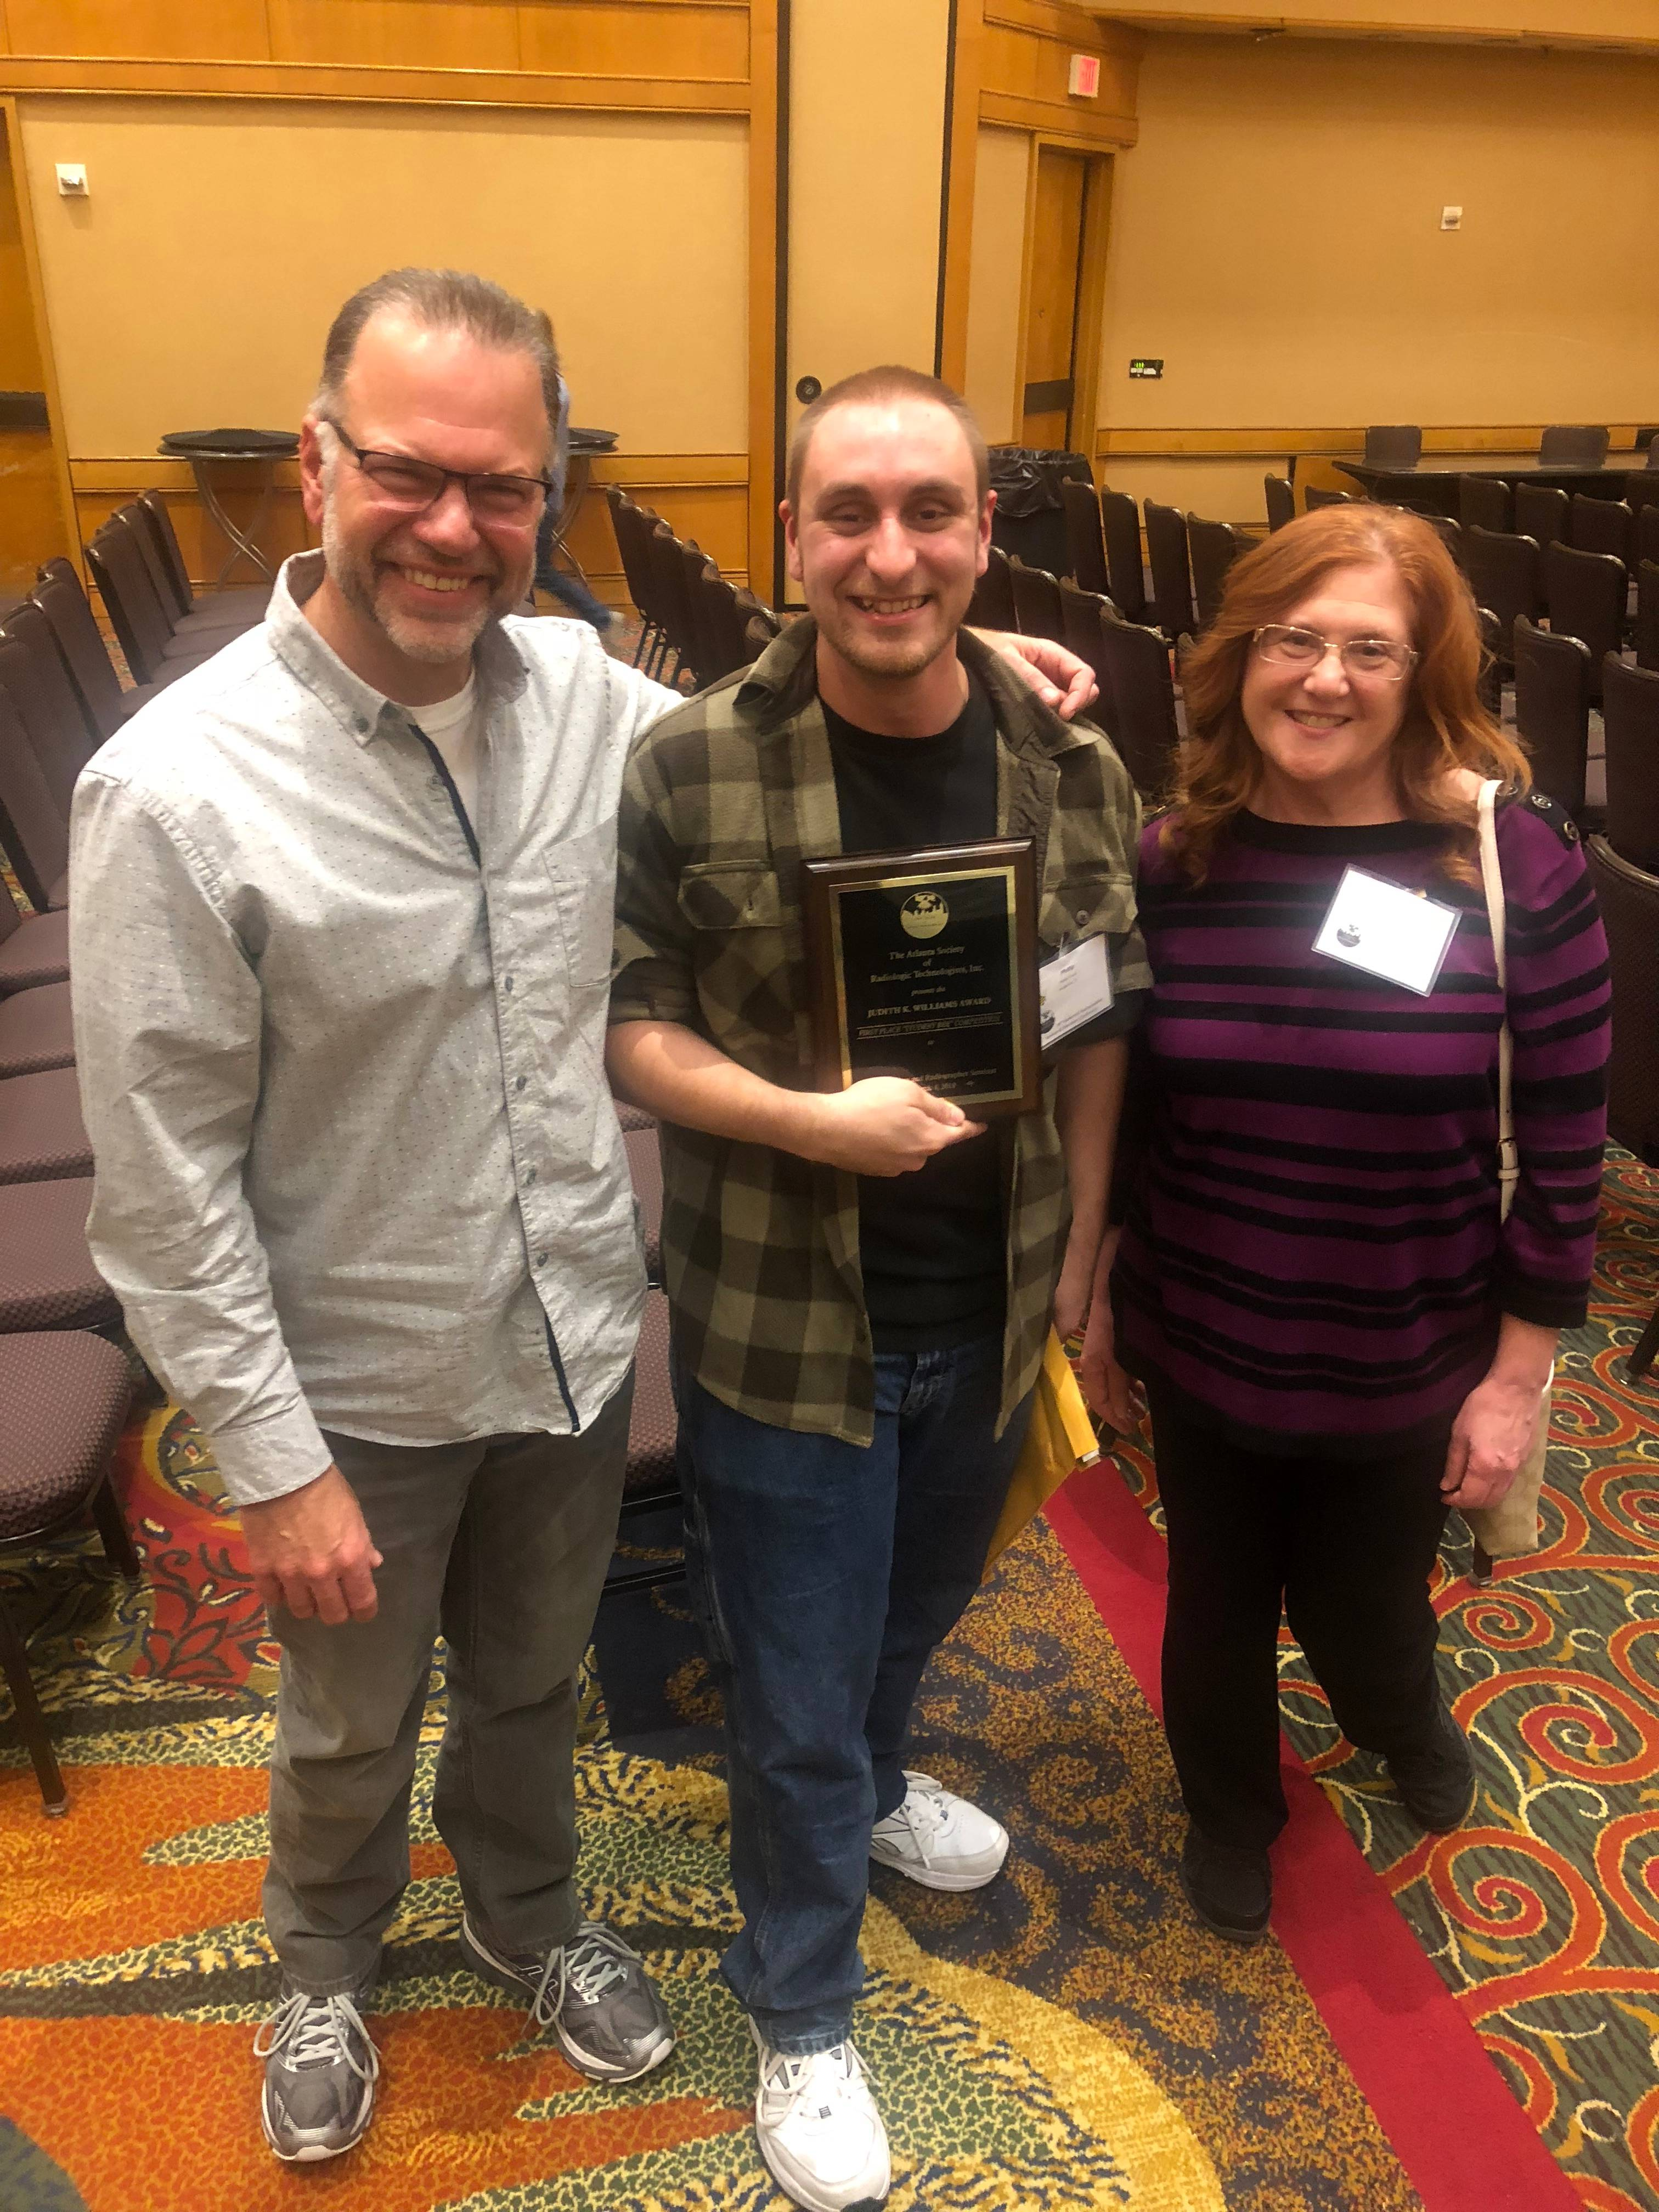 Patrick Patterson, radiography program manager; first-place winner and SCF student Phillip Cascio; Madelyn Micallef, radiography program clinical coordinator